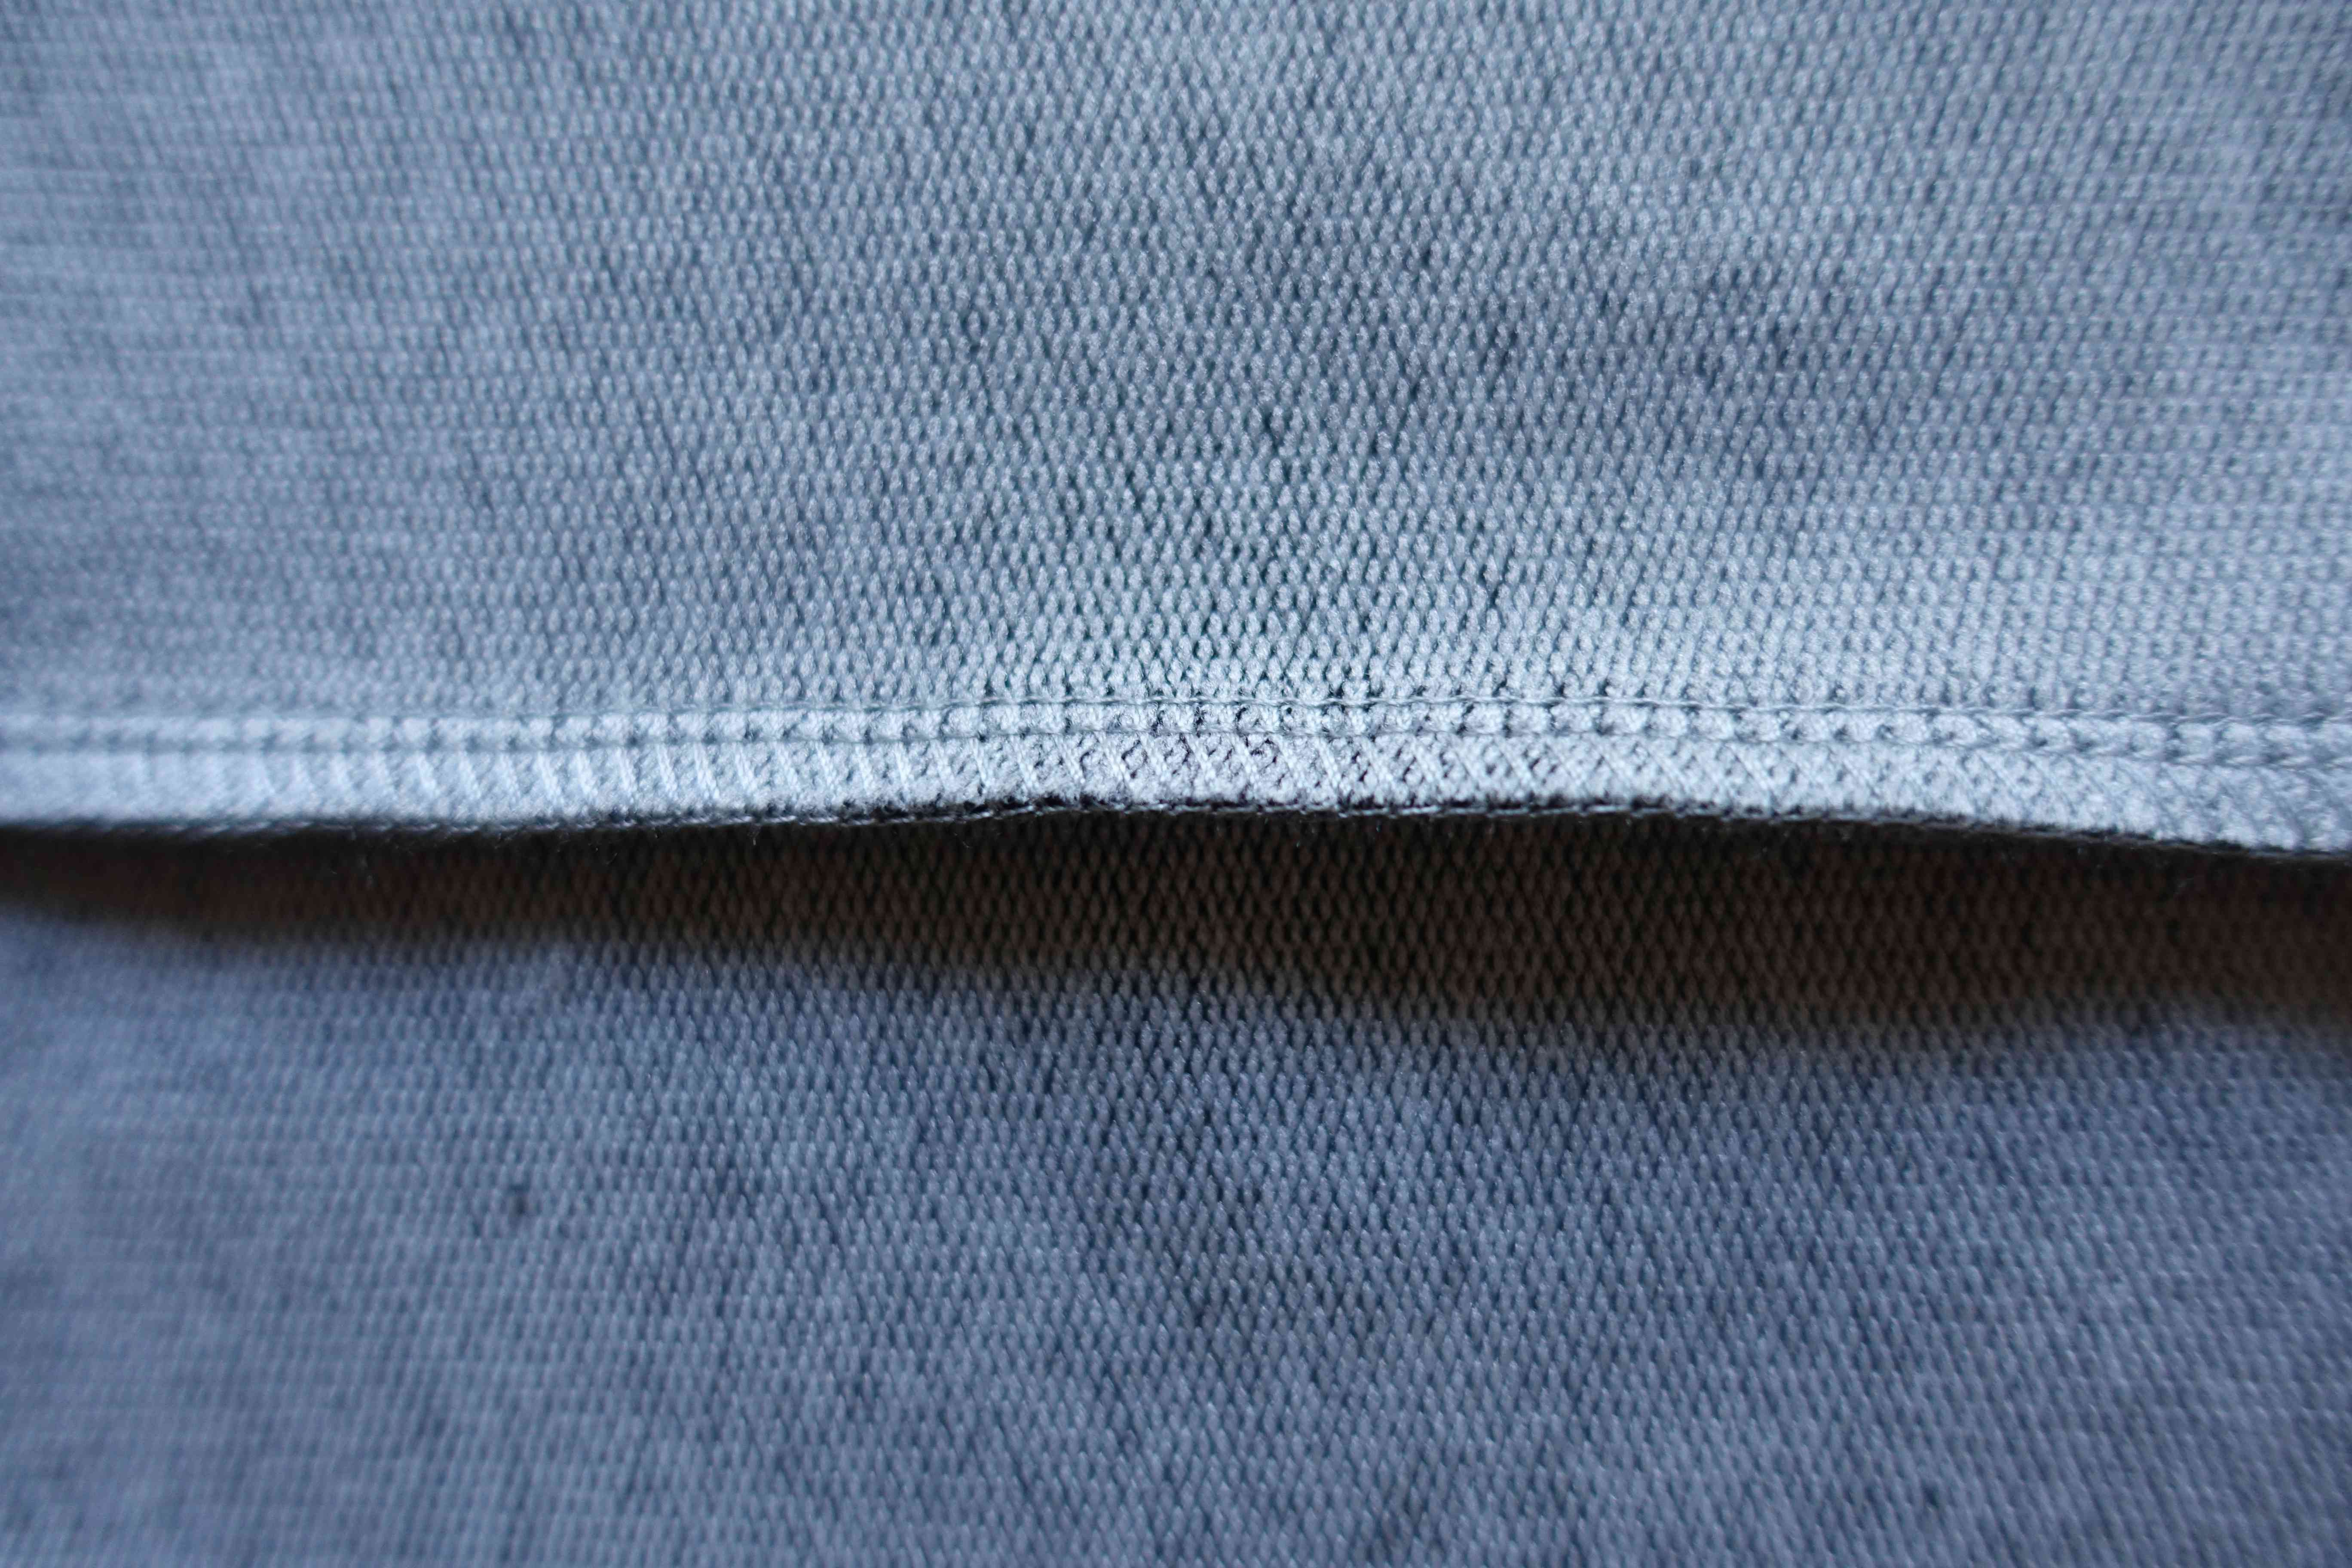 Stitch on the inner side of grey fabric